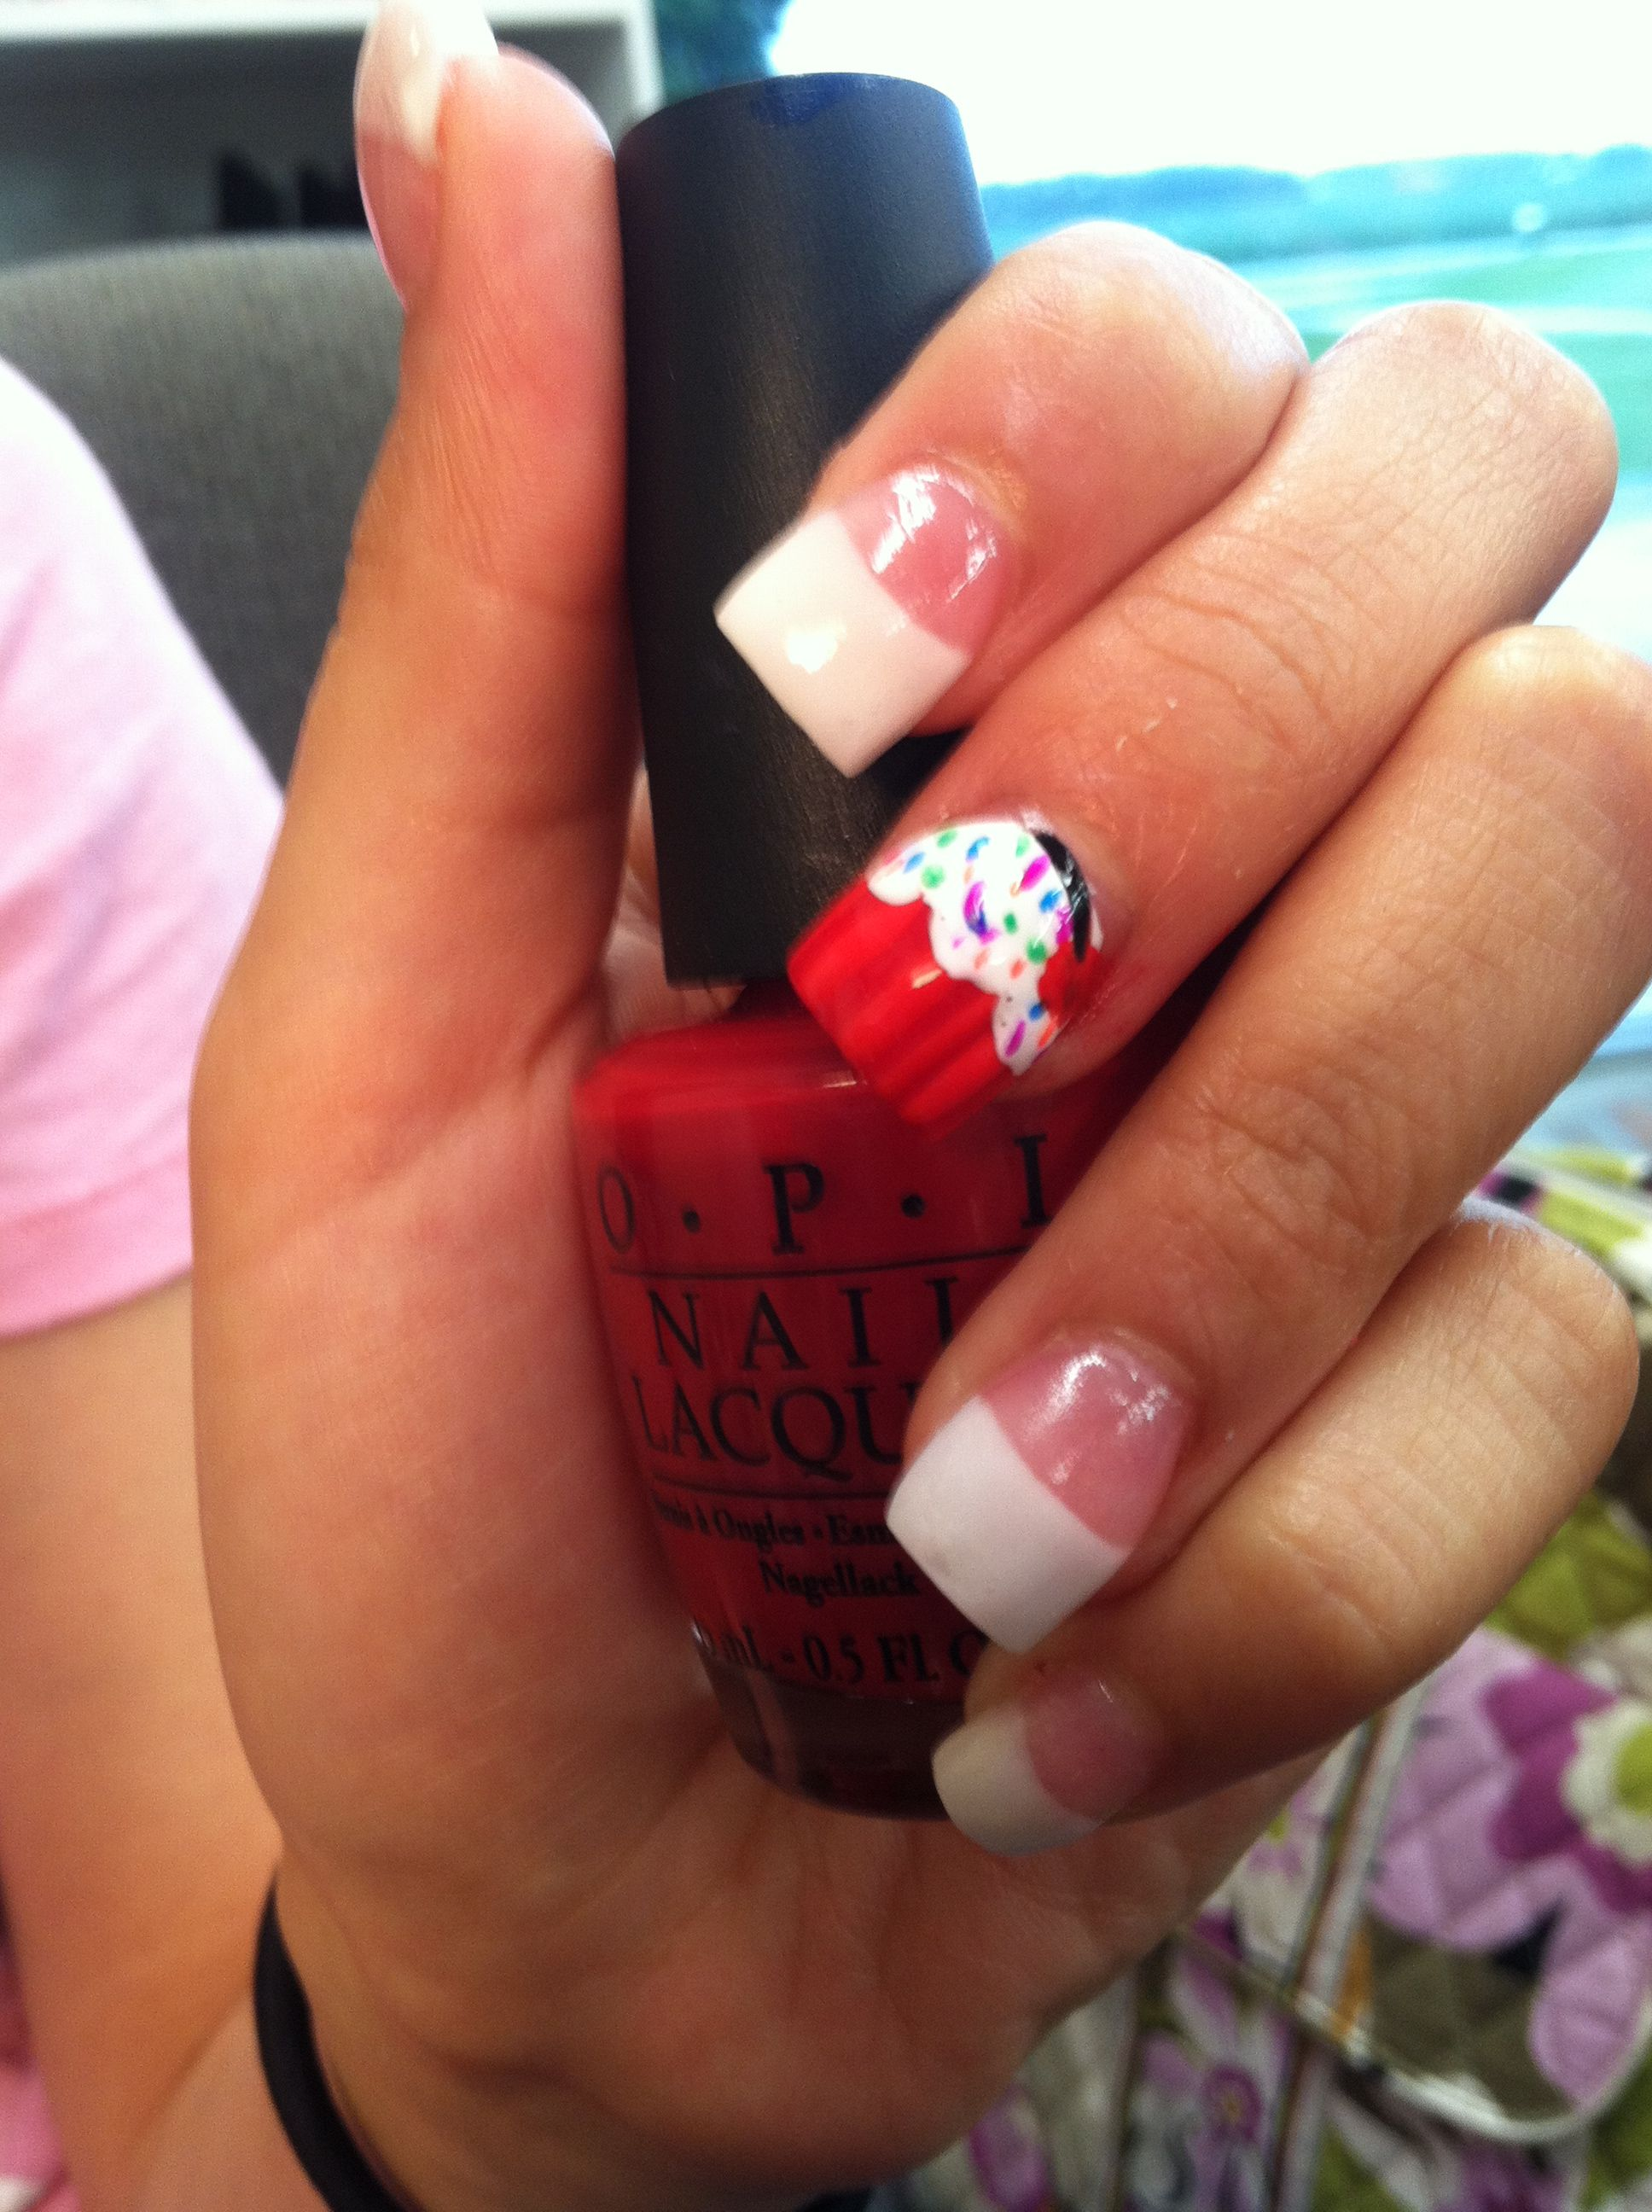 Acrylic white tip sculpt with cup cake nail art